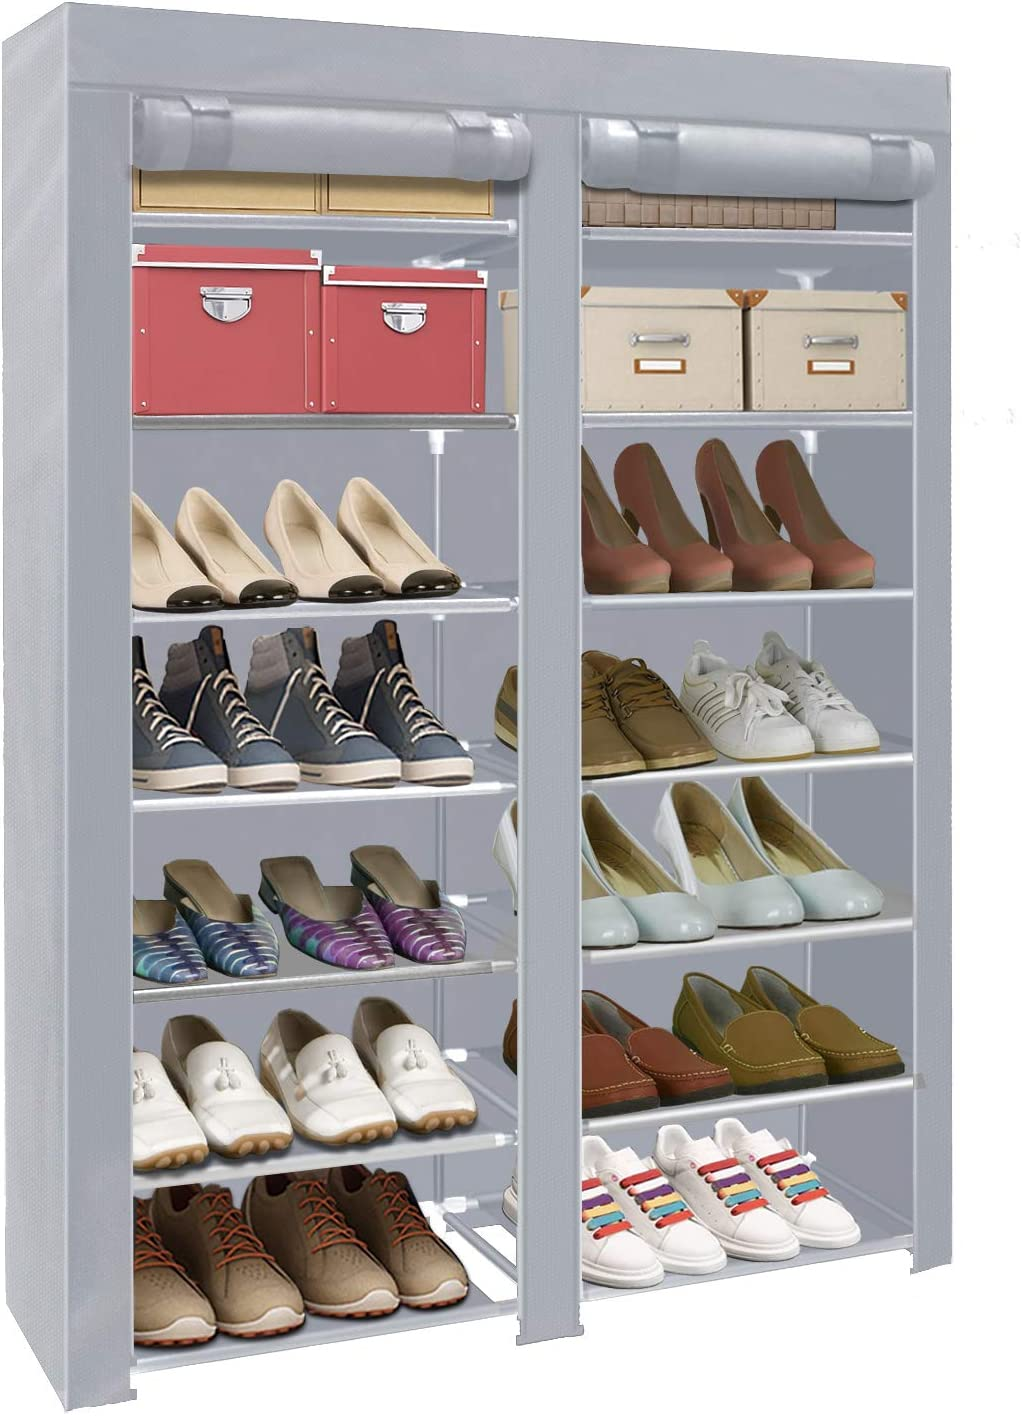 ERONE Shoe Rack Storage Organizer , 28 Pairs Portable Double Row with Nonwoven Fabric Cover Shoe Rack Cabinet for Closet (Grey)